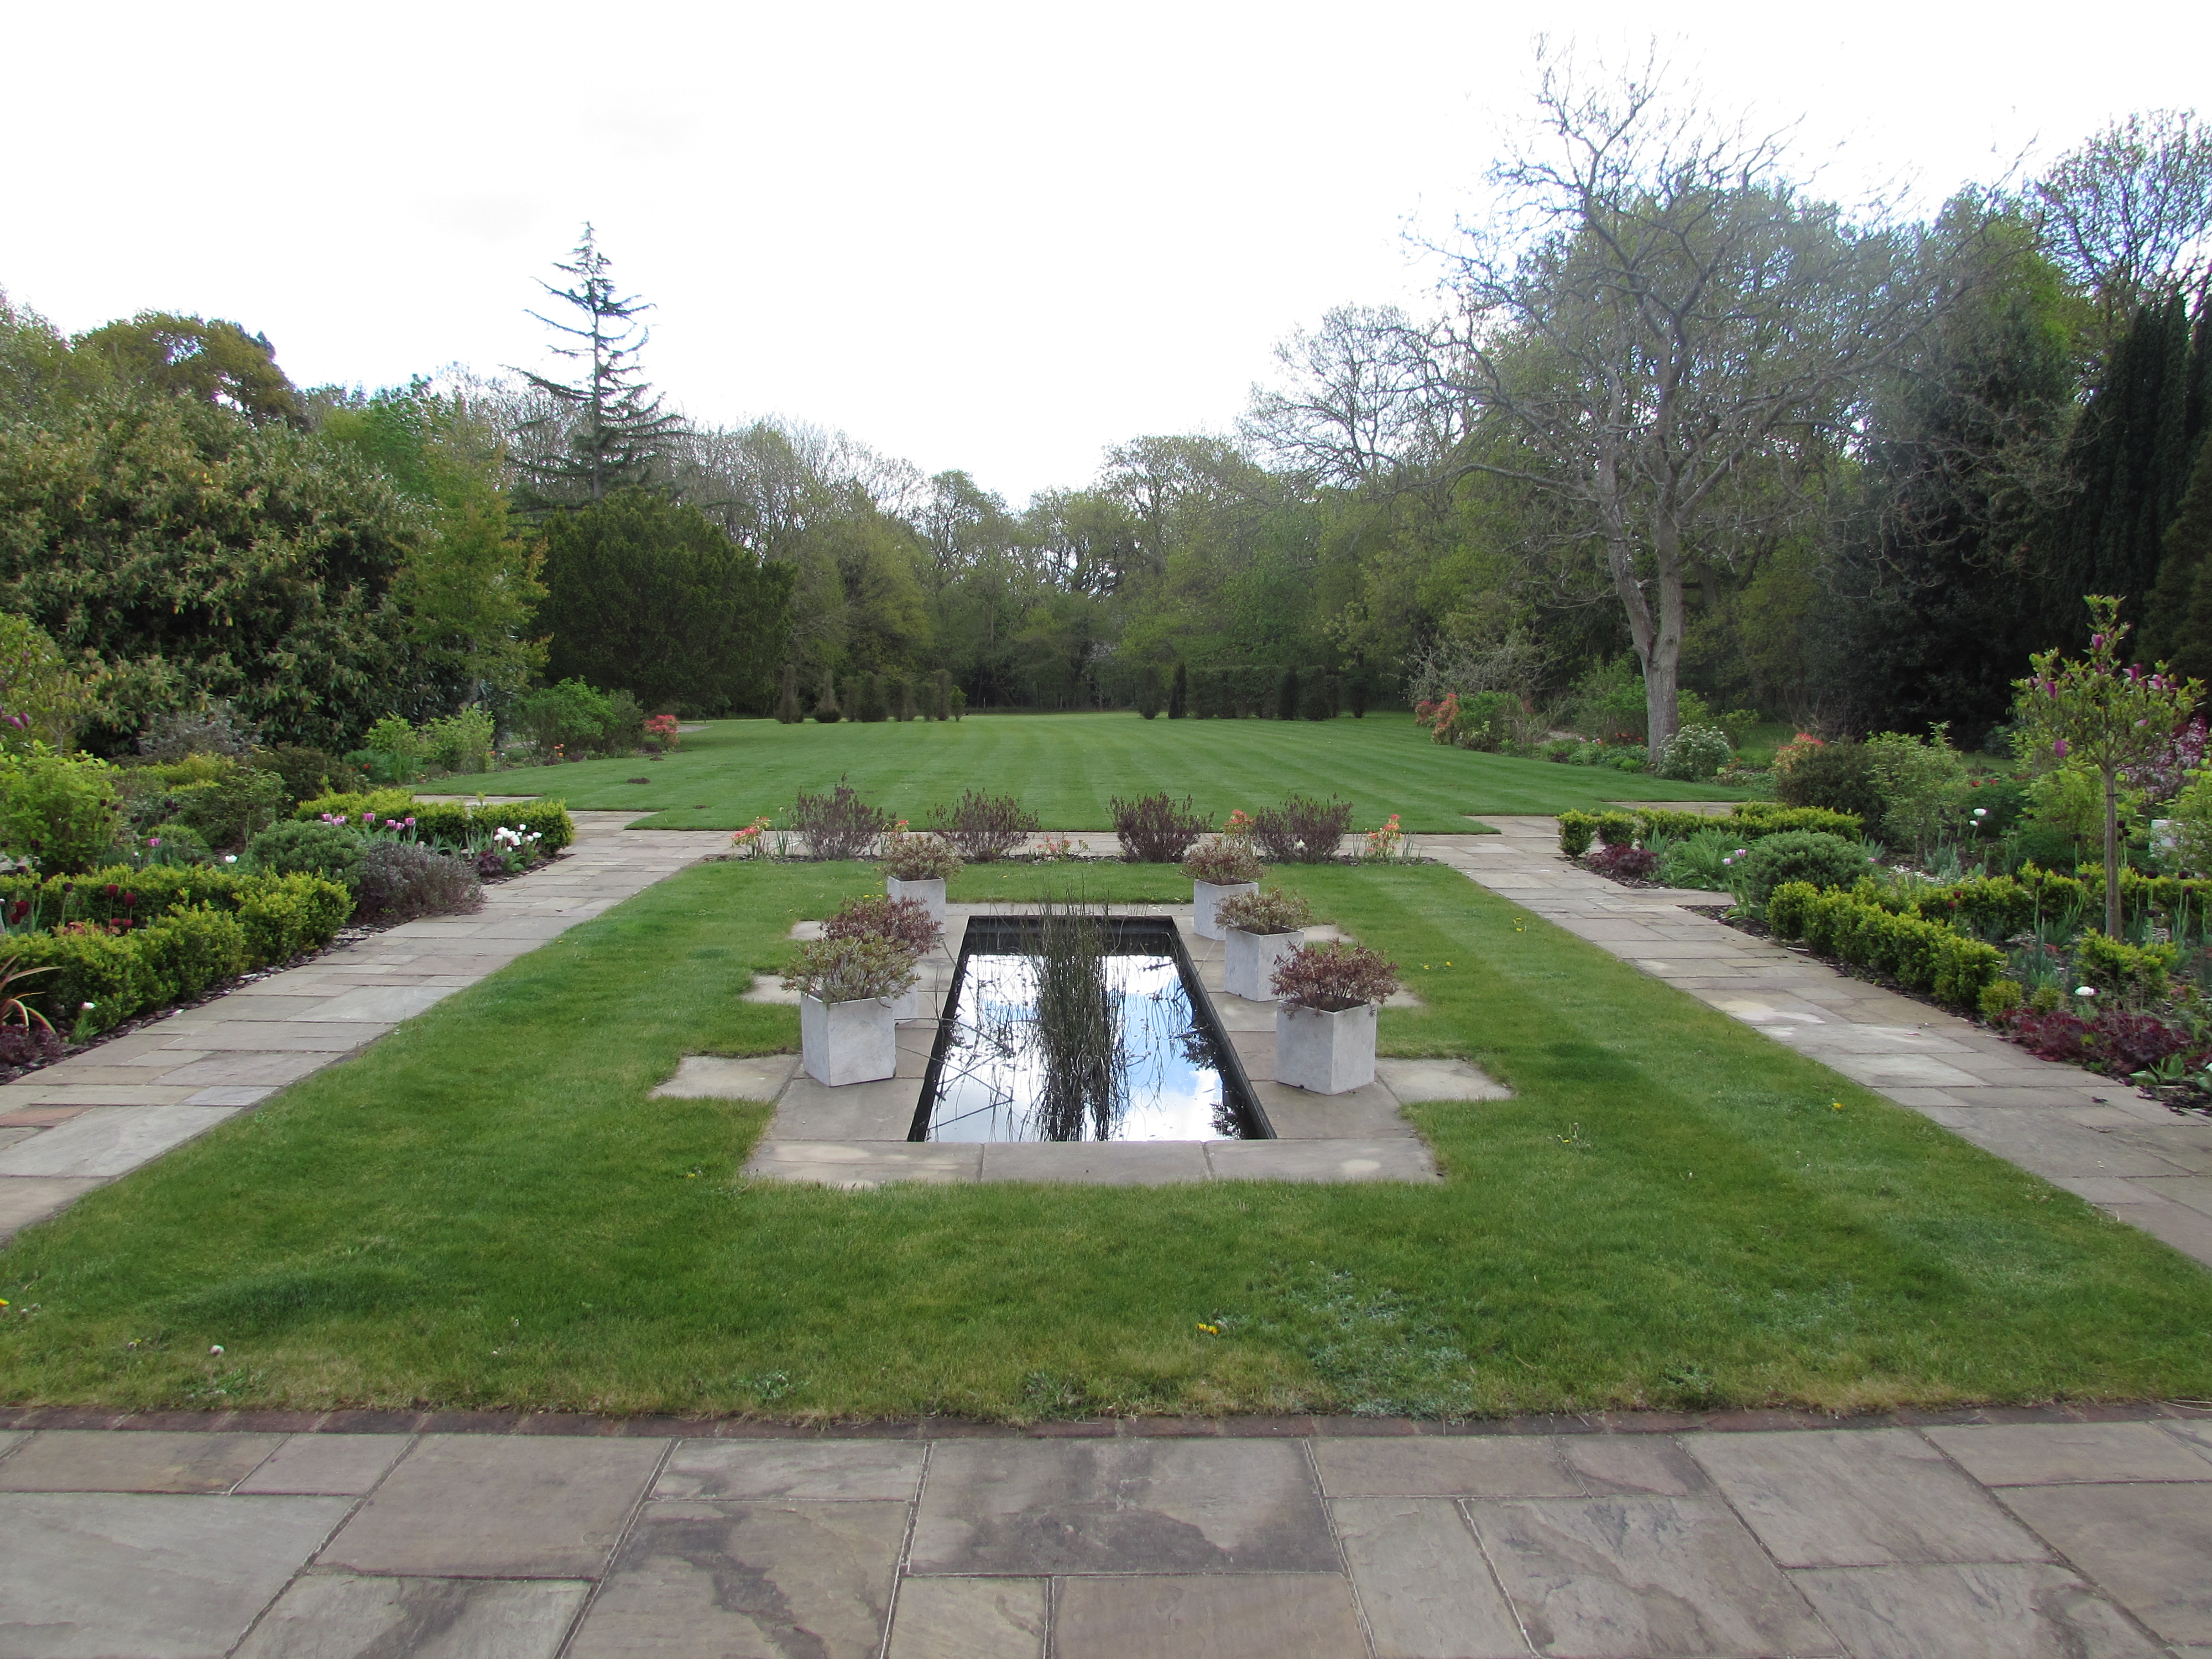 garden services features complete outdoor formal for water fountains landsculpture